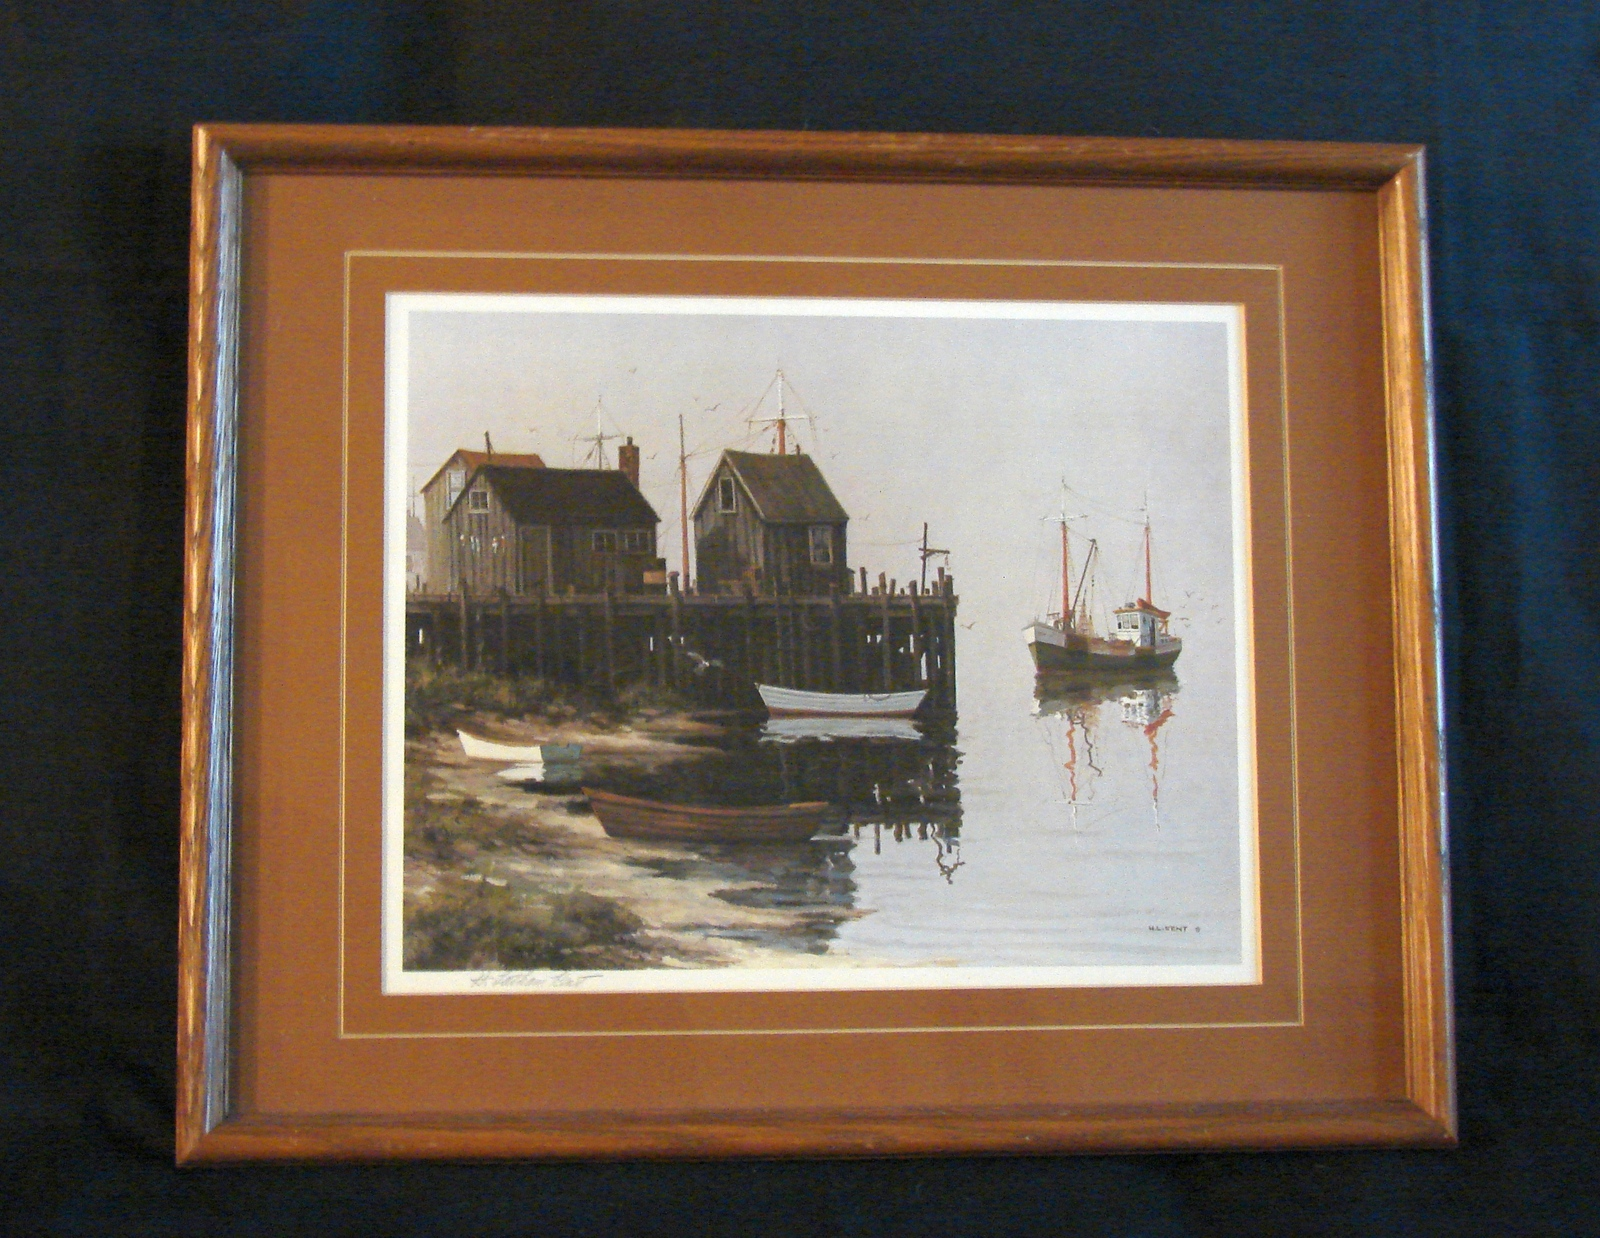 Primary image for Herman Latham Kent Signed, Matted, Framed  Print of Boats